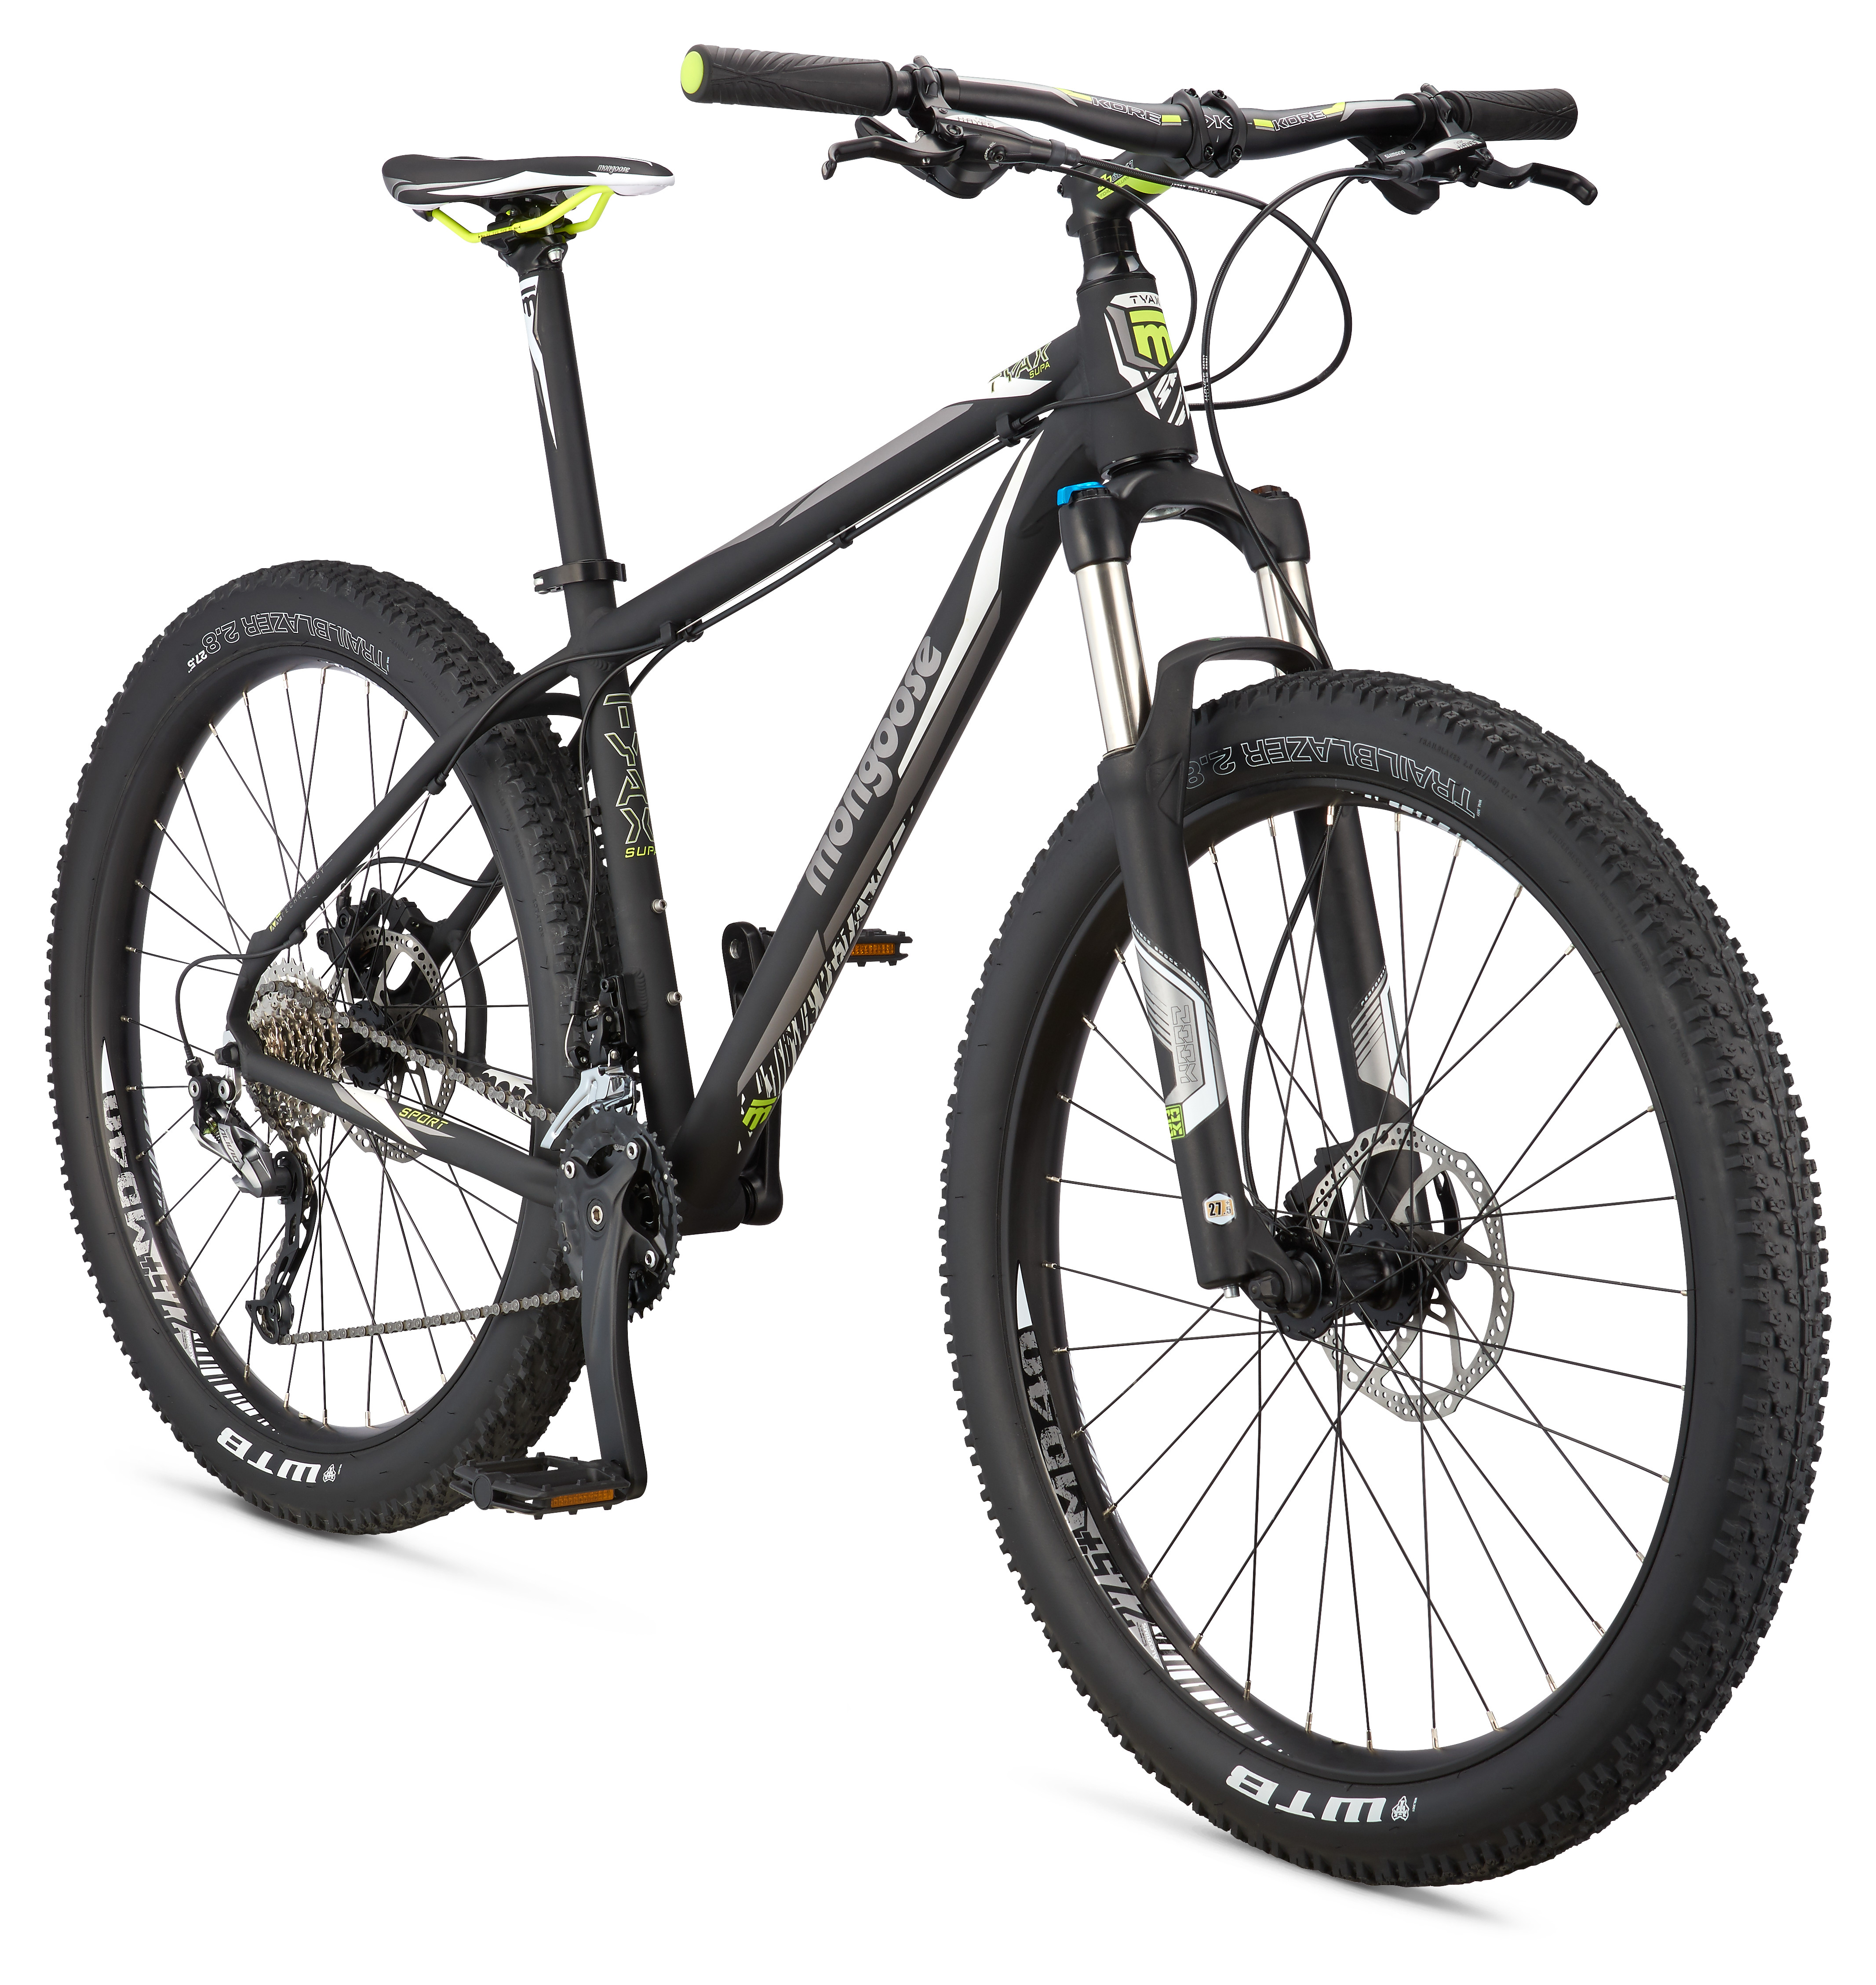 "Mongoose Tyax Supa Sport 27.5+"" Men's Hardtail Mountain Bike, Black, Medium"